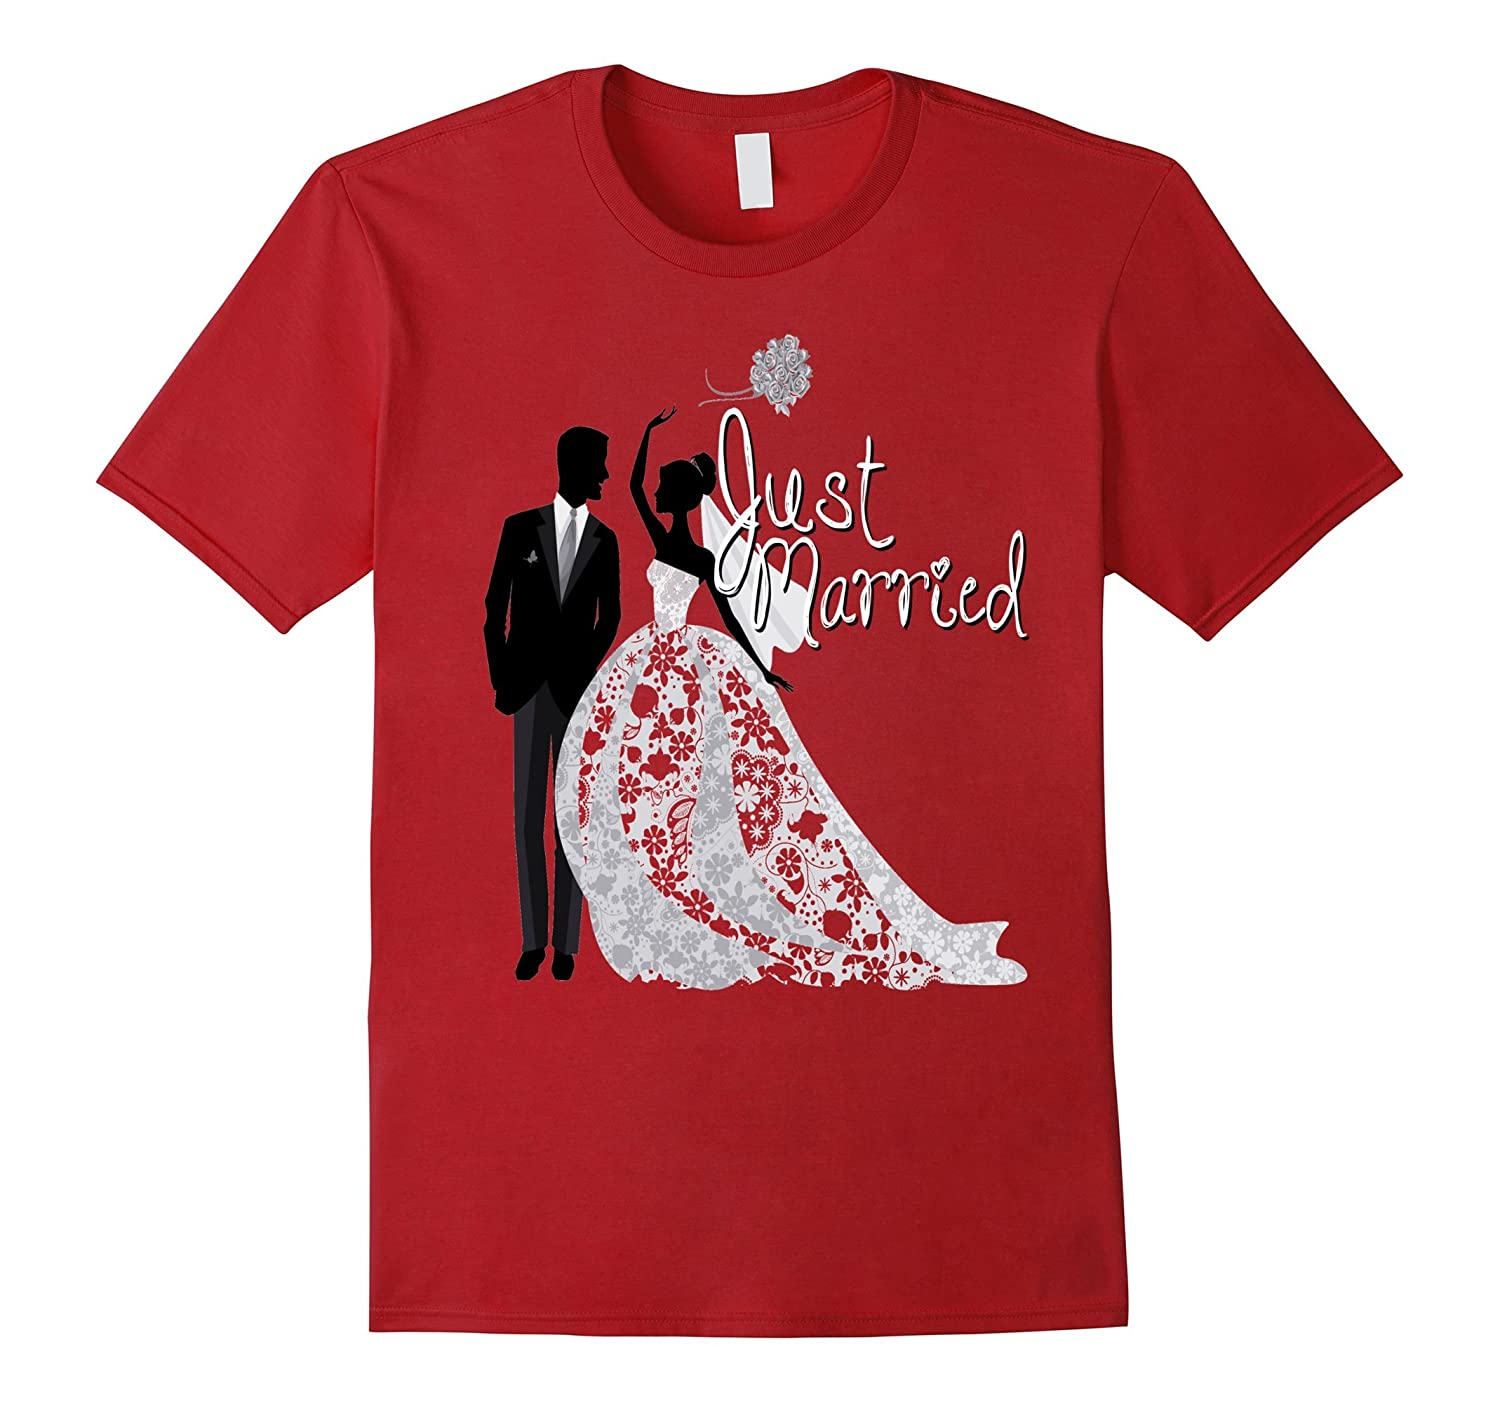 55043a4af4 Just Married Shirt Wedding Gift Honeymoon Bride Groom Couple-RT ...